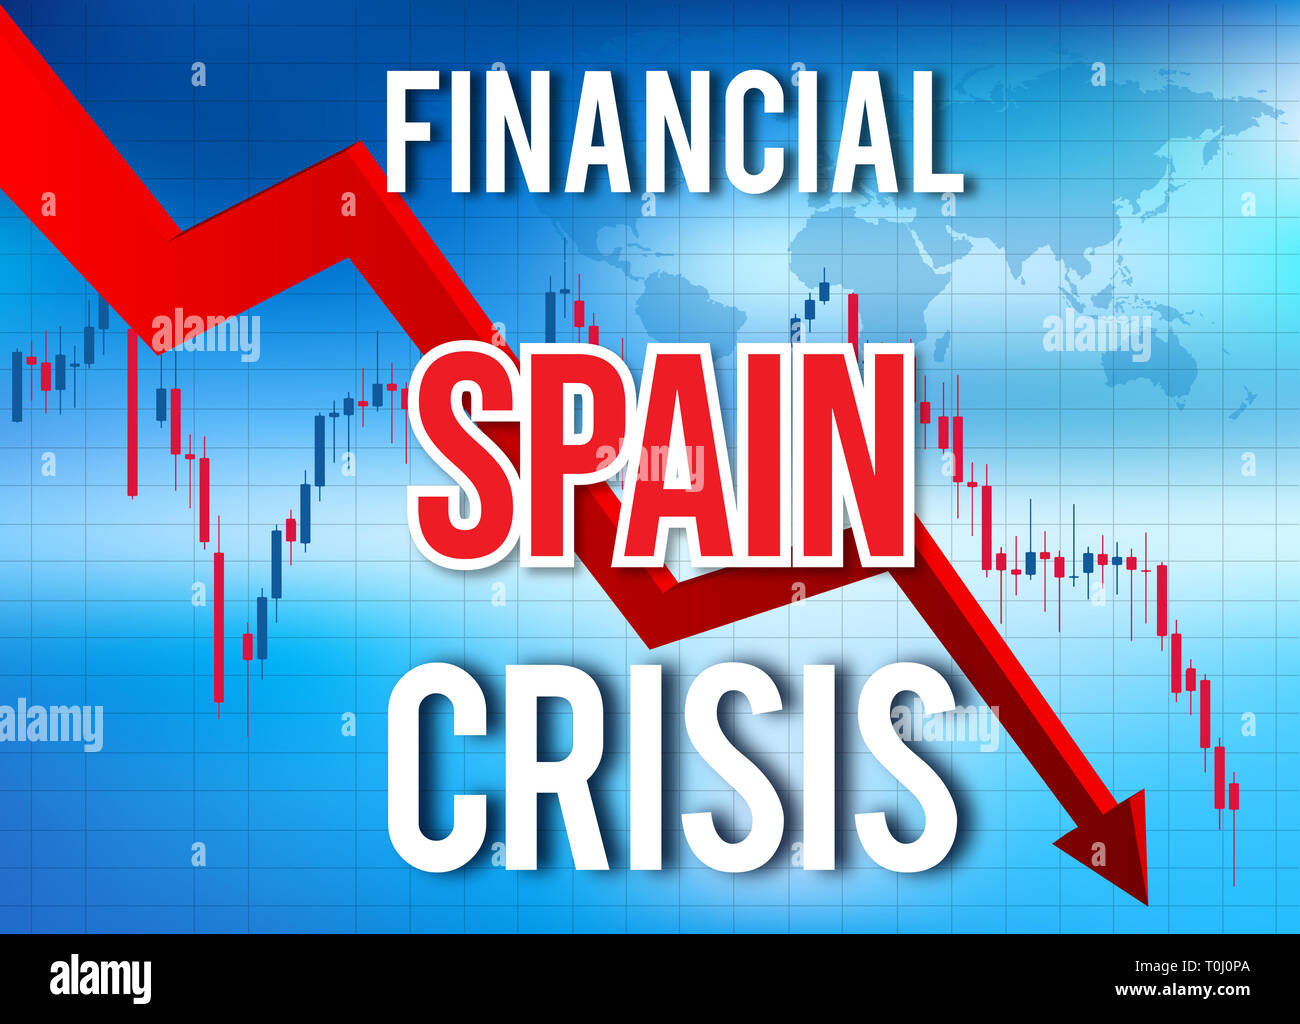 Spain Financial Crisis Economic Collapse Market Crash Global Meltdown Illustration. - Stock Image